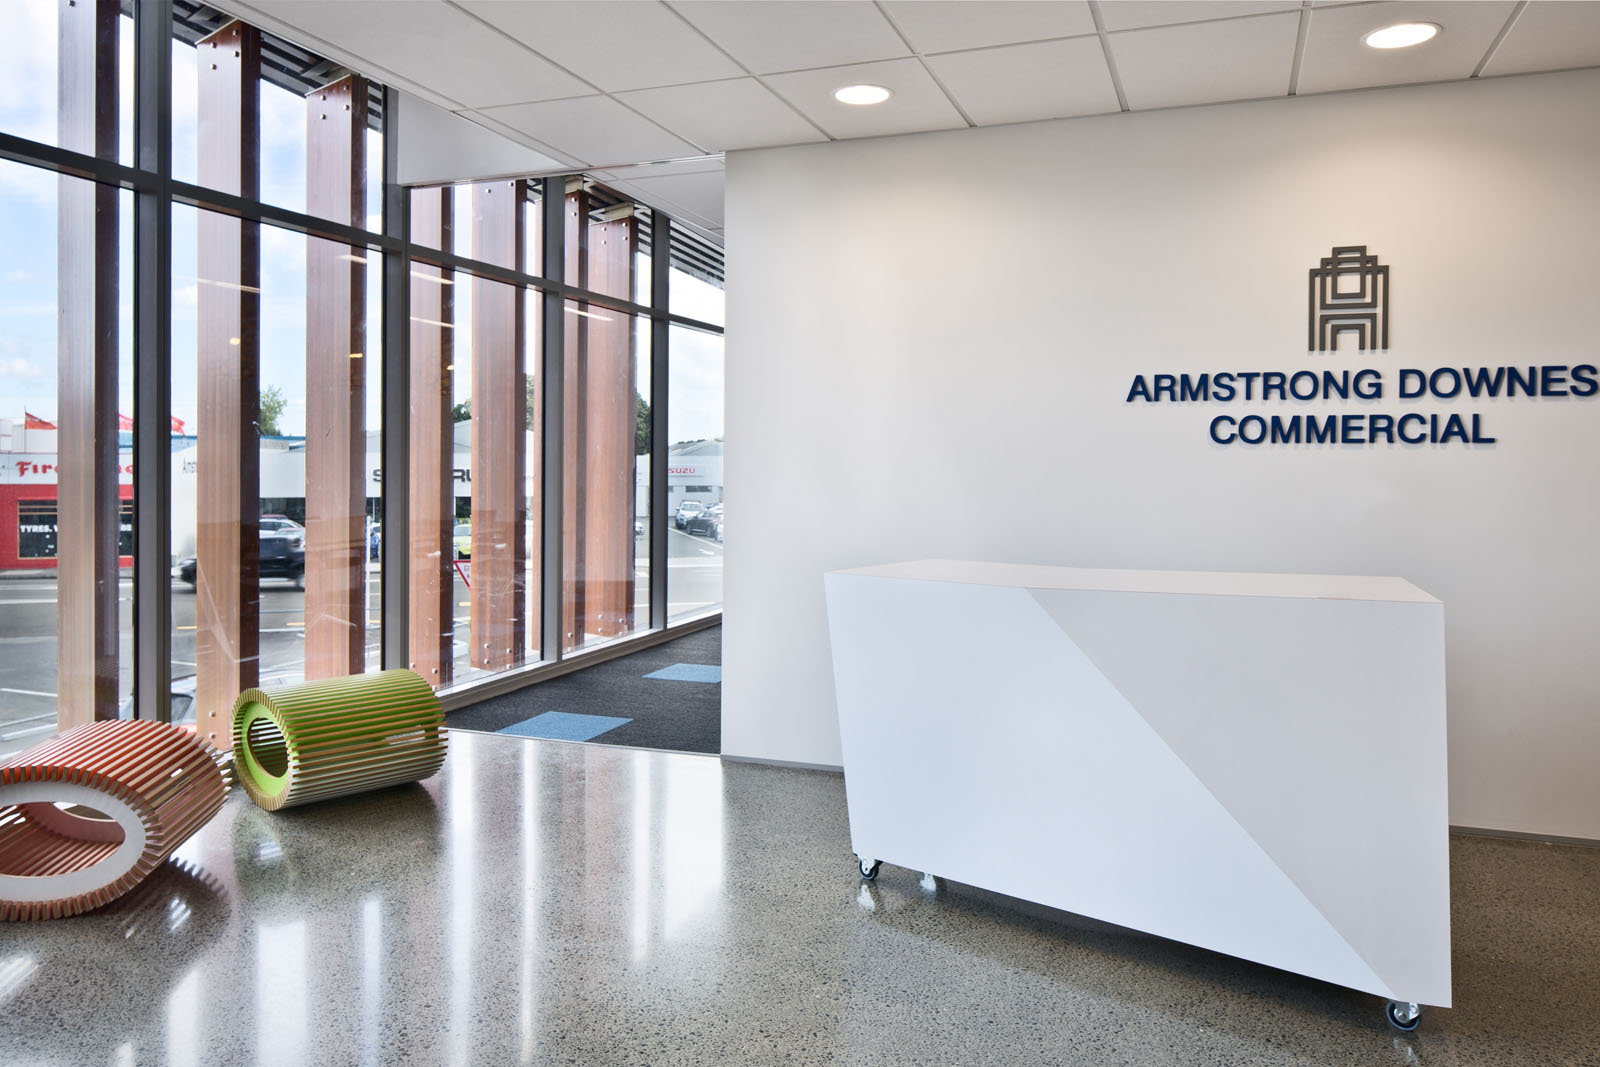 Armstrong Downes Commercial Office Building_Reception_4 of 6.jpg